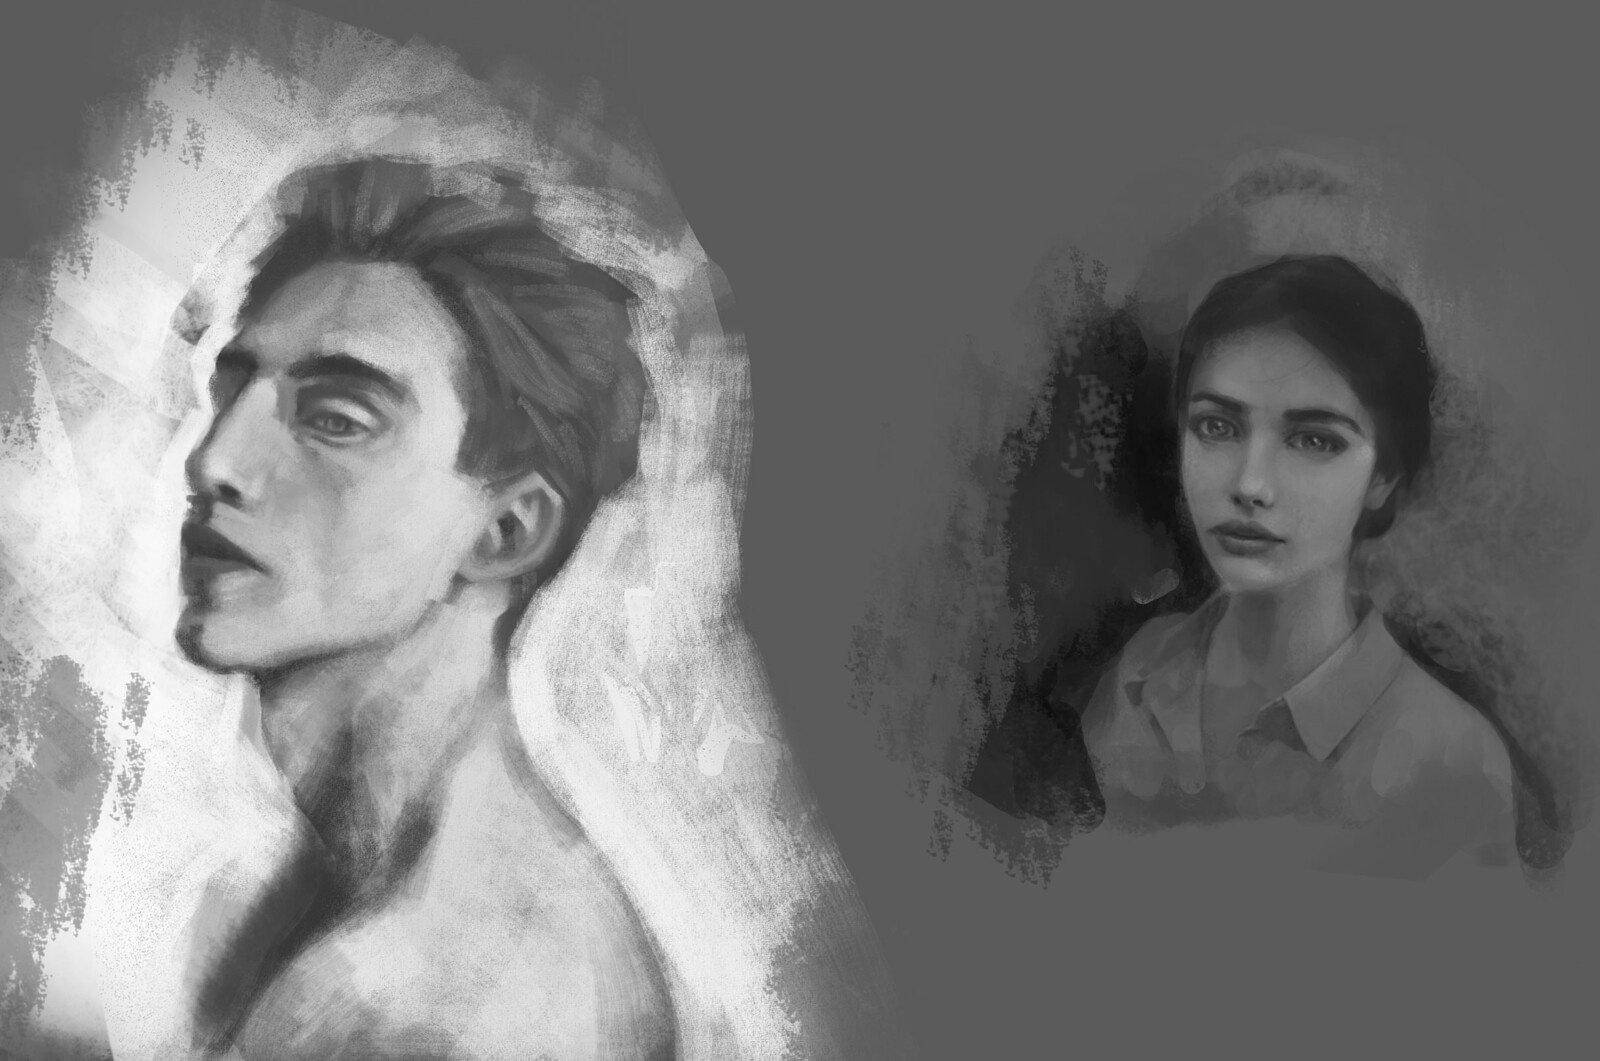 Greyscale sketches